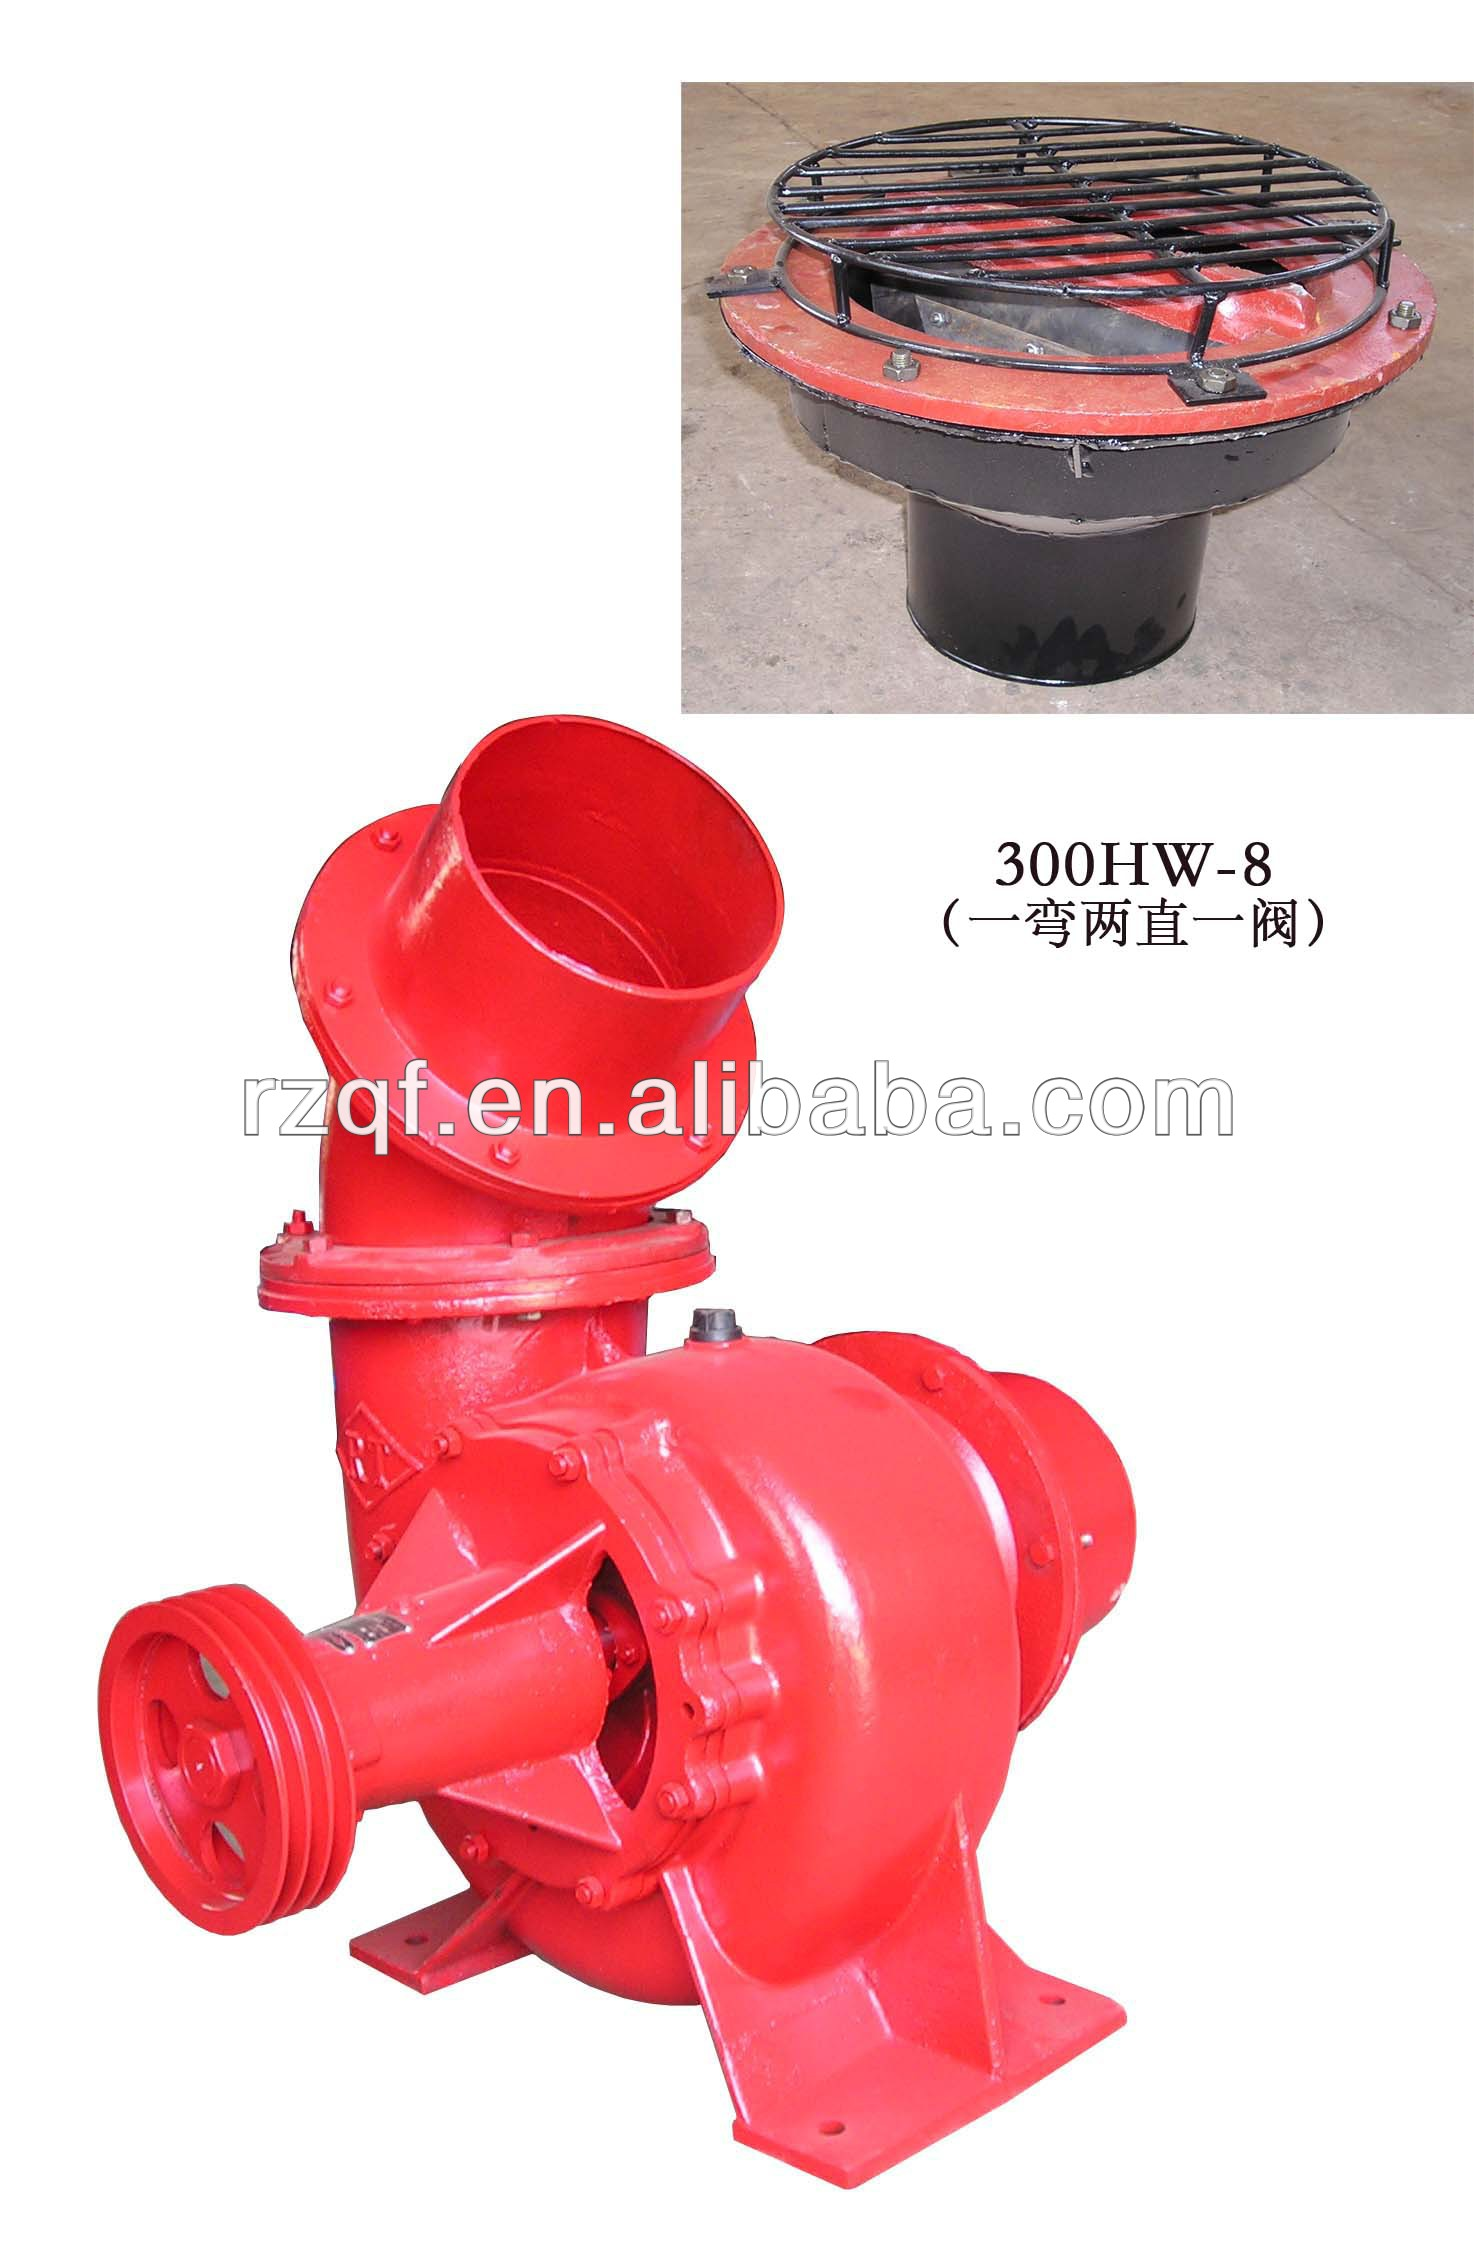 HW type series High quality Mixed- flow pump, agricultural spray pump